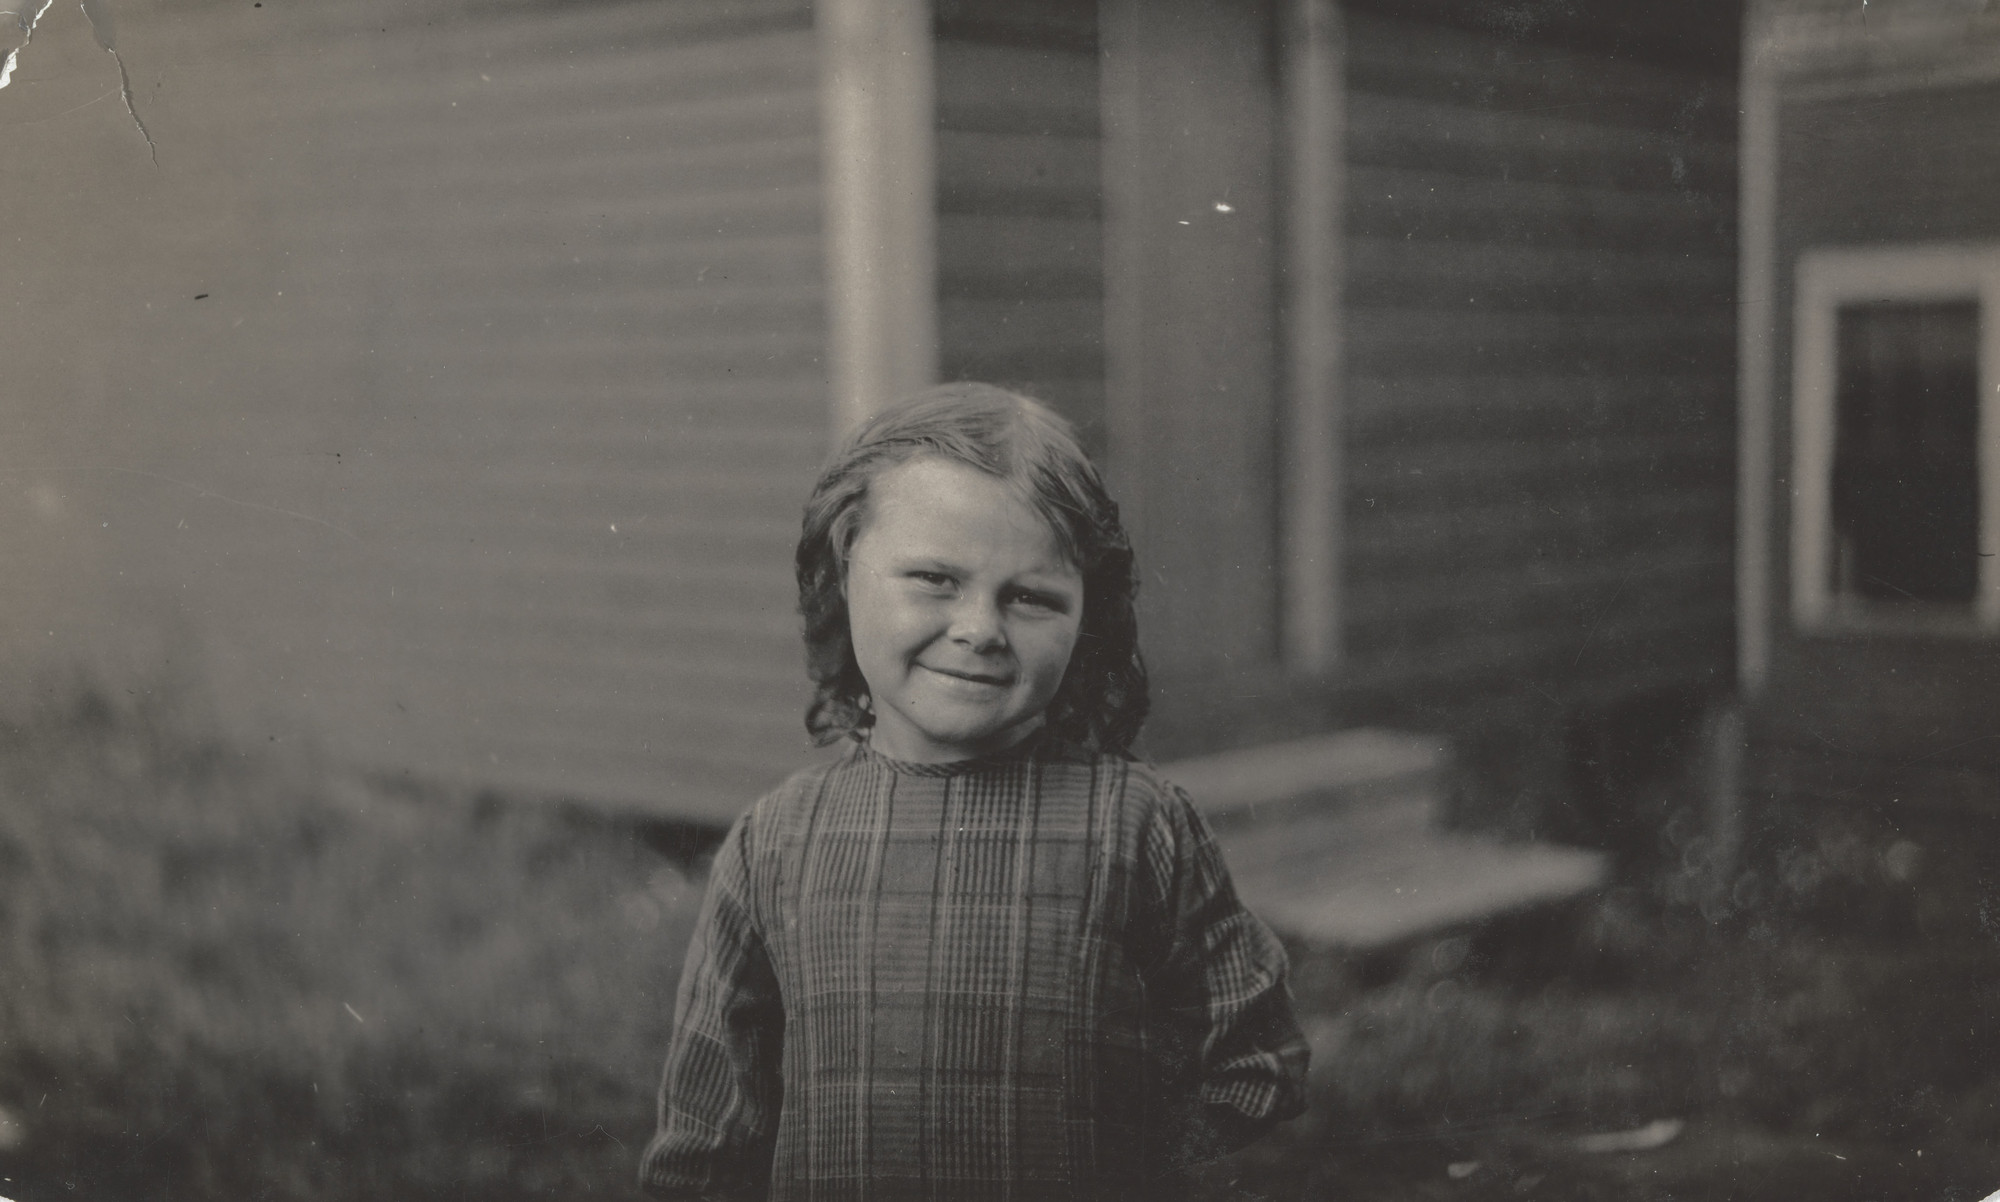 Lewis W. Hine. Seacoast Canning Co., Eastport, Maine. August 1911